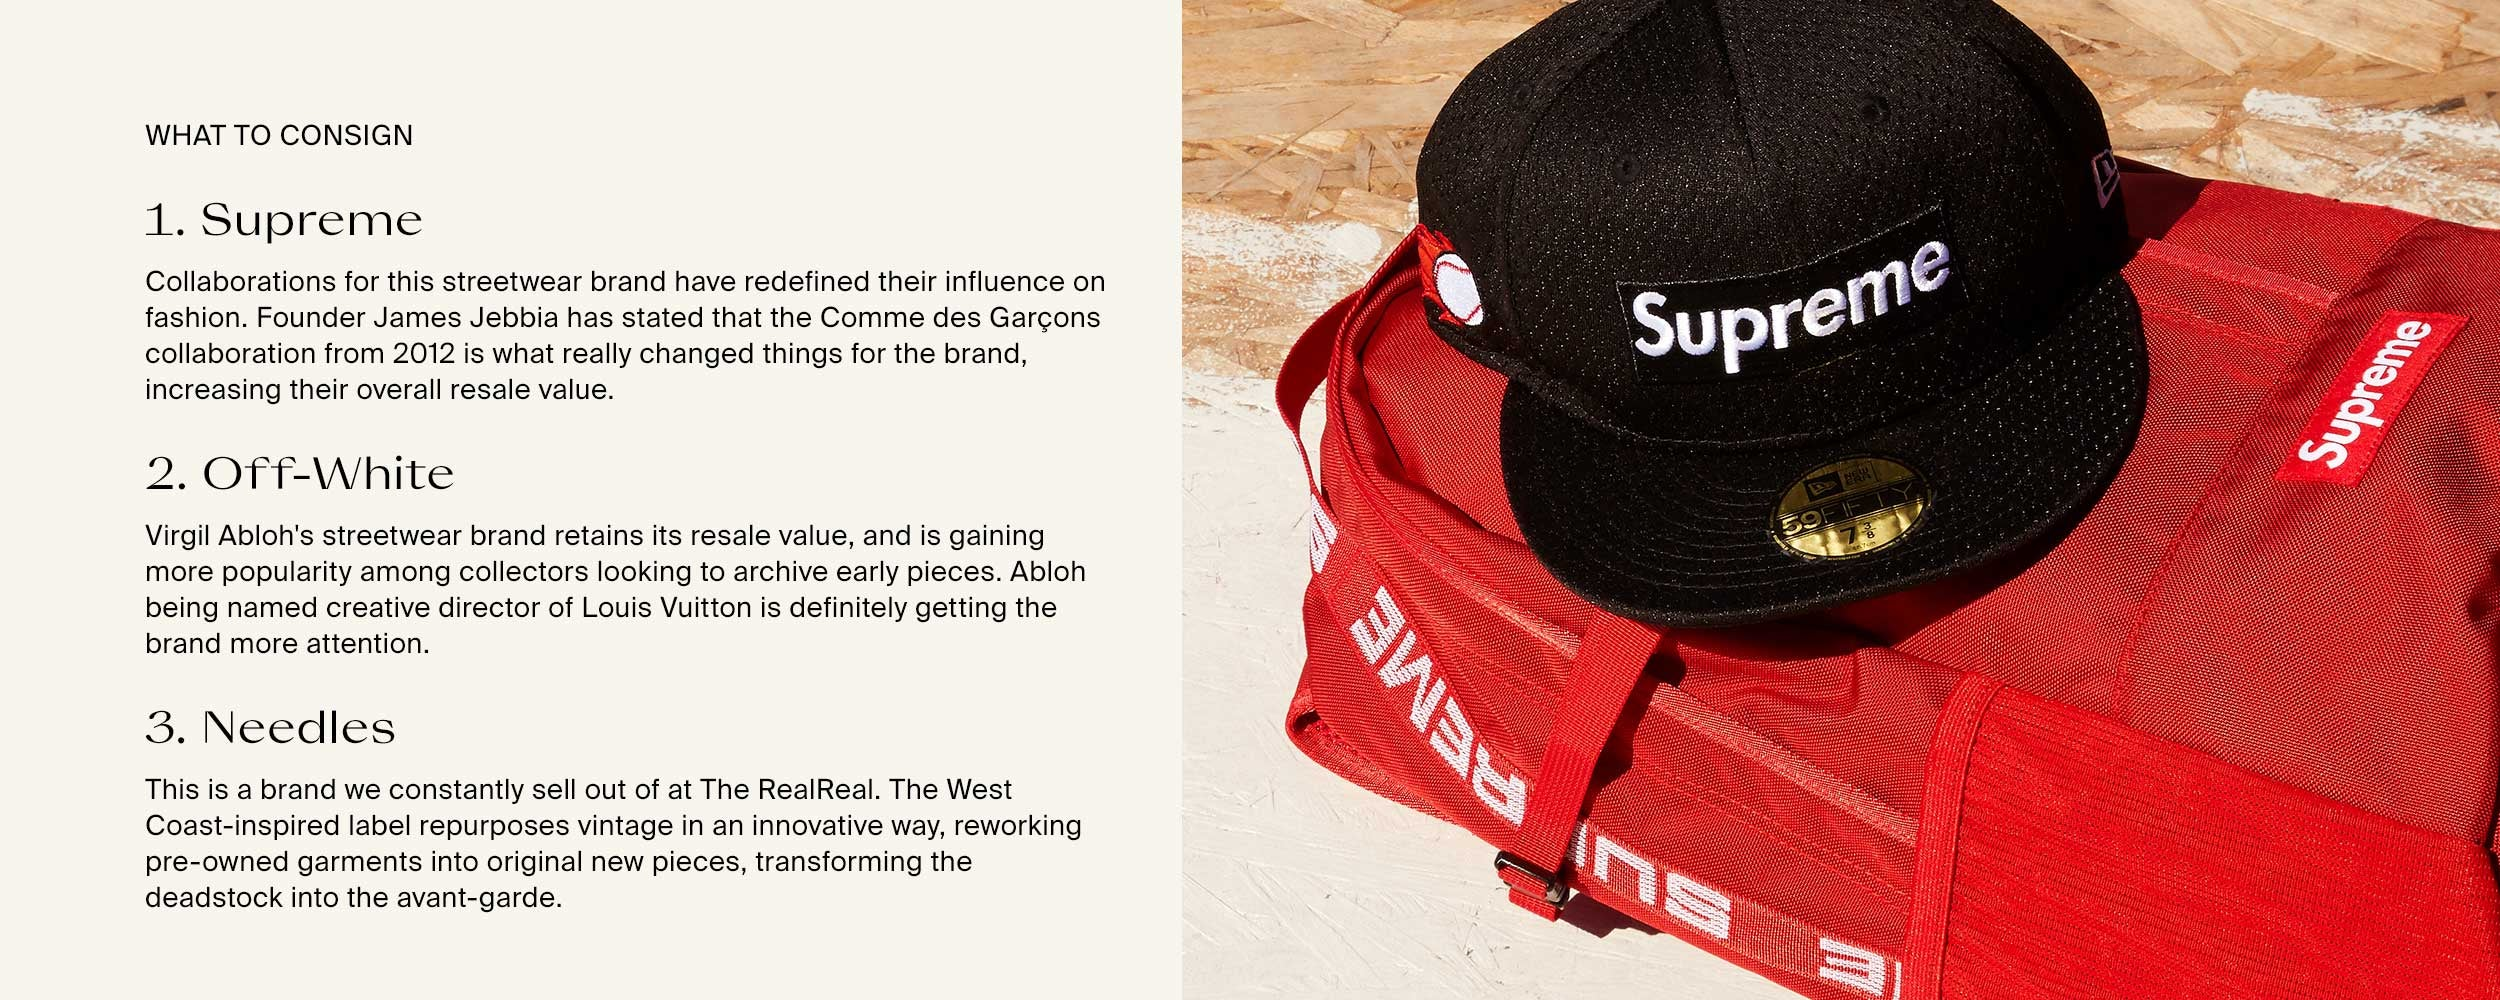 d1223ec2 Streetwear To Buy & Consign Now | The RealReal